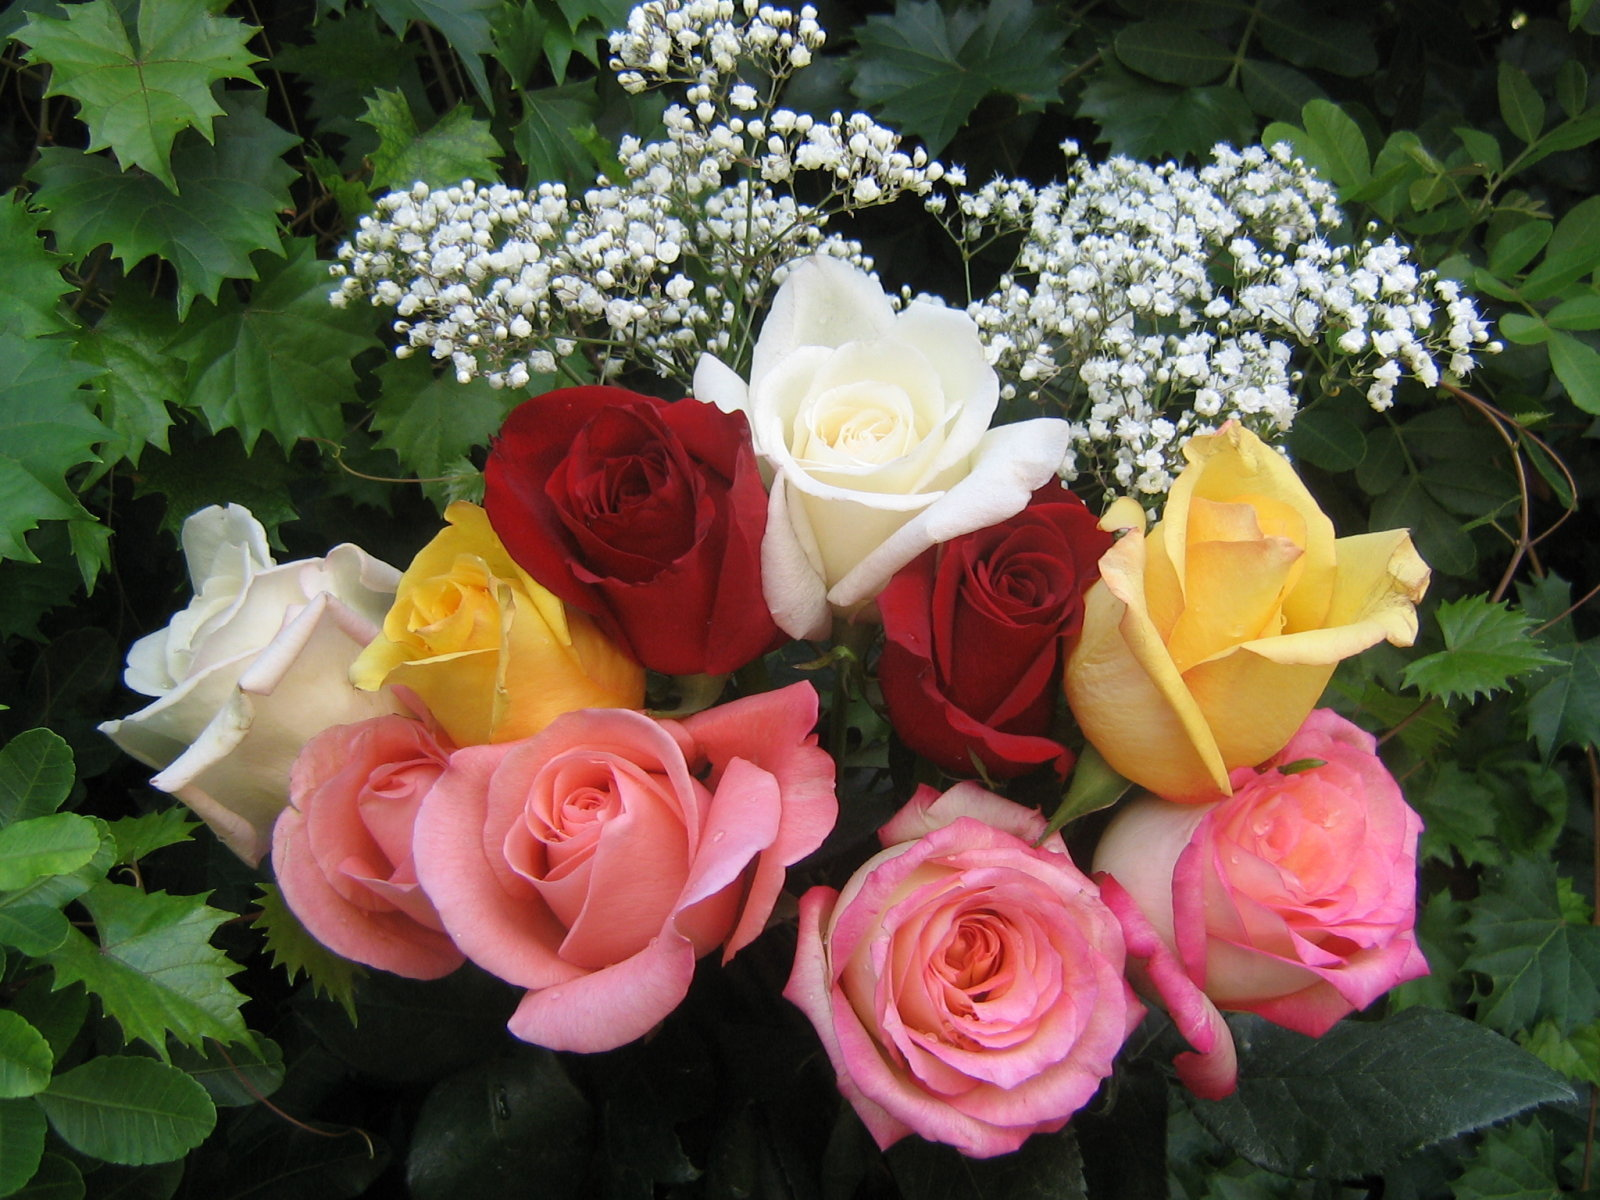 Beautiful rose images and wallpapers 8